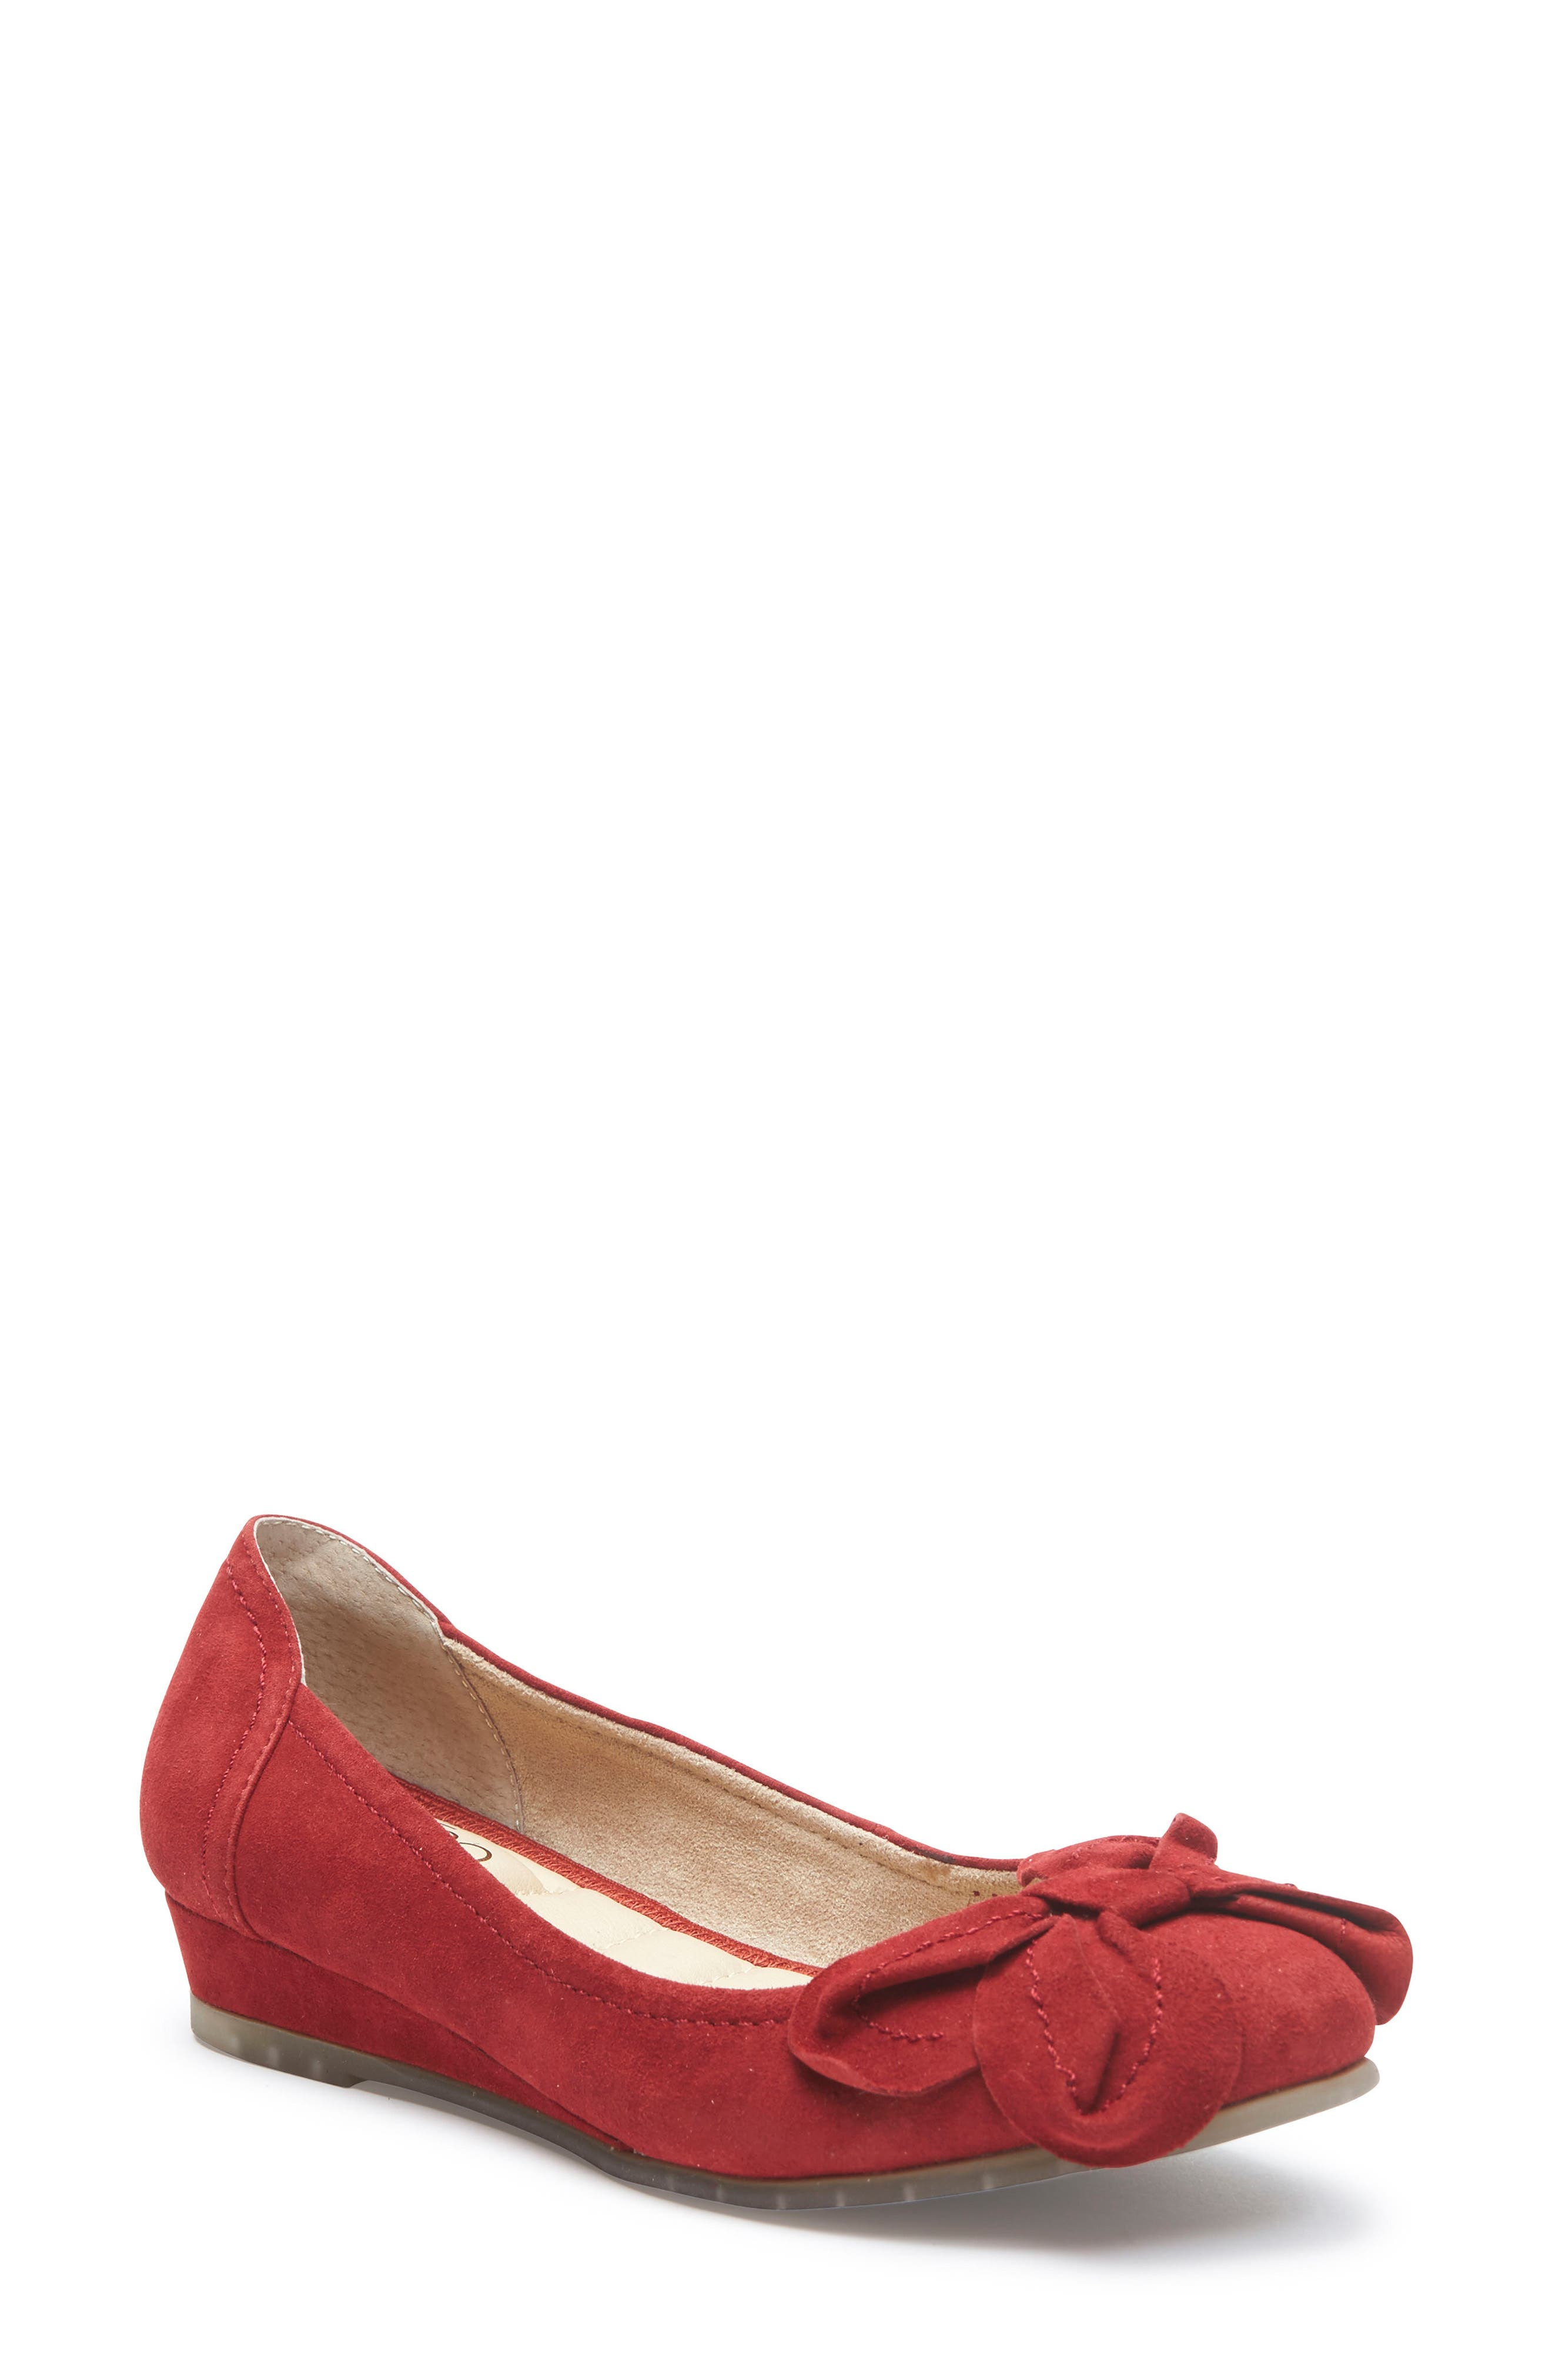 Alternate Image 1 Selected - Me Too Martina Bow Ballet Wedge (Women)